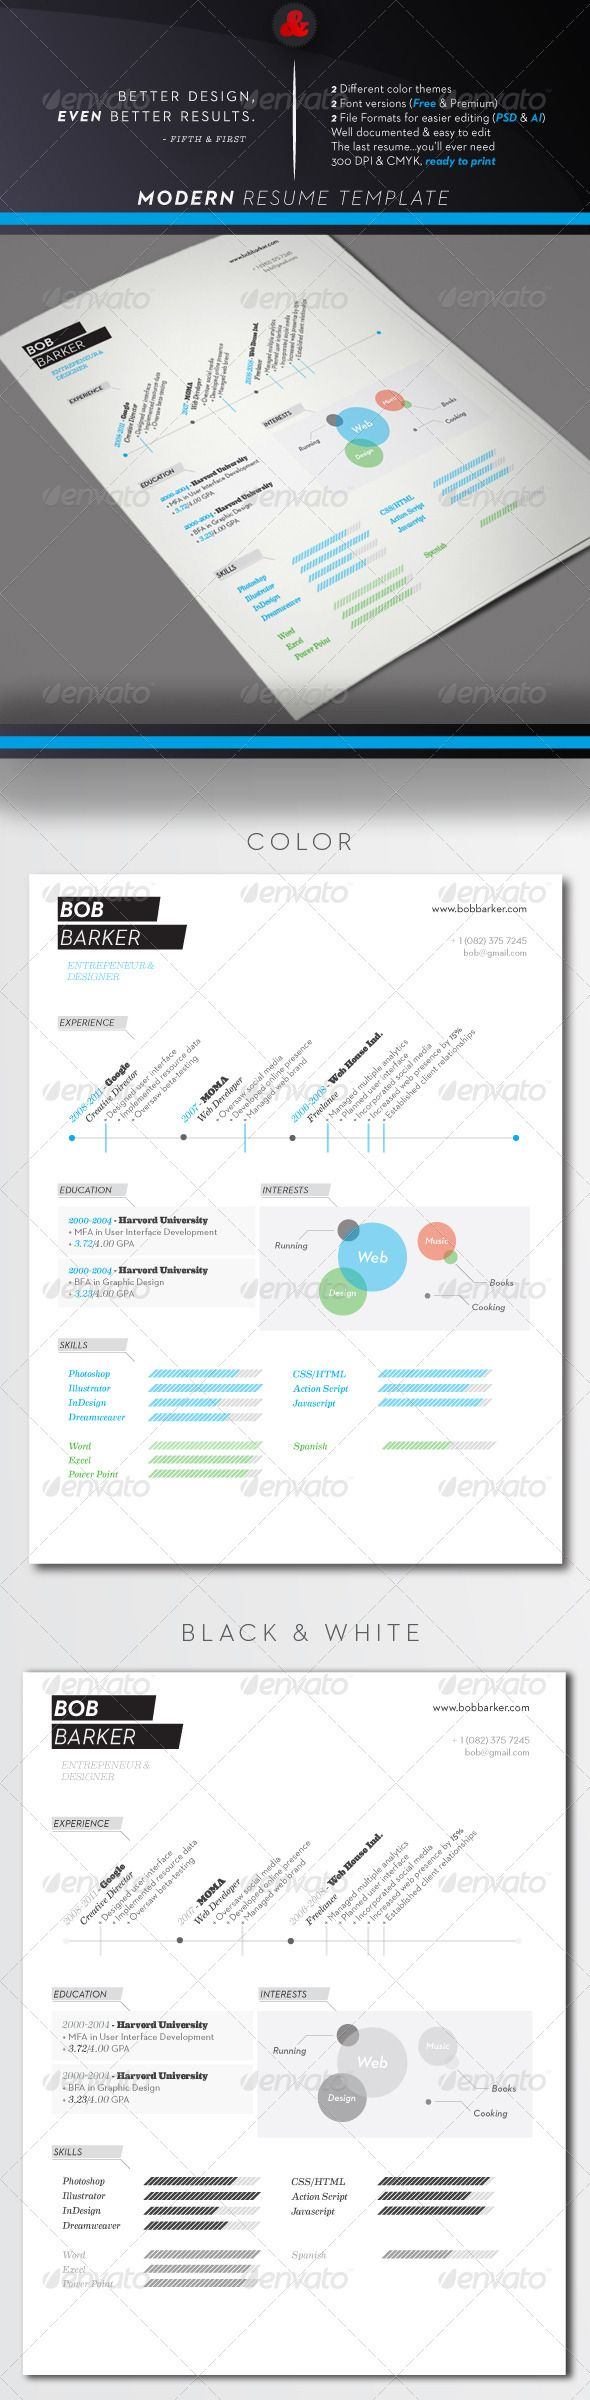 best images about photoshop resume templates 17 best images about photoshop resume templates cover letters resume and creative resume